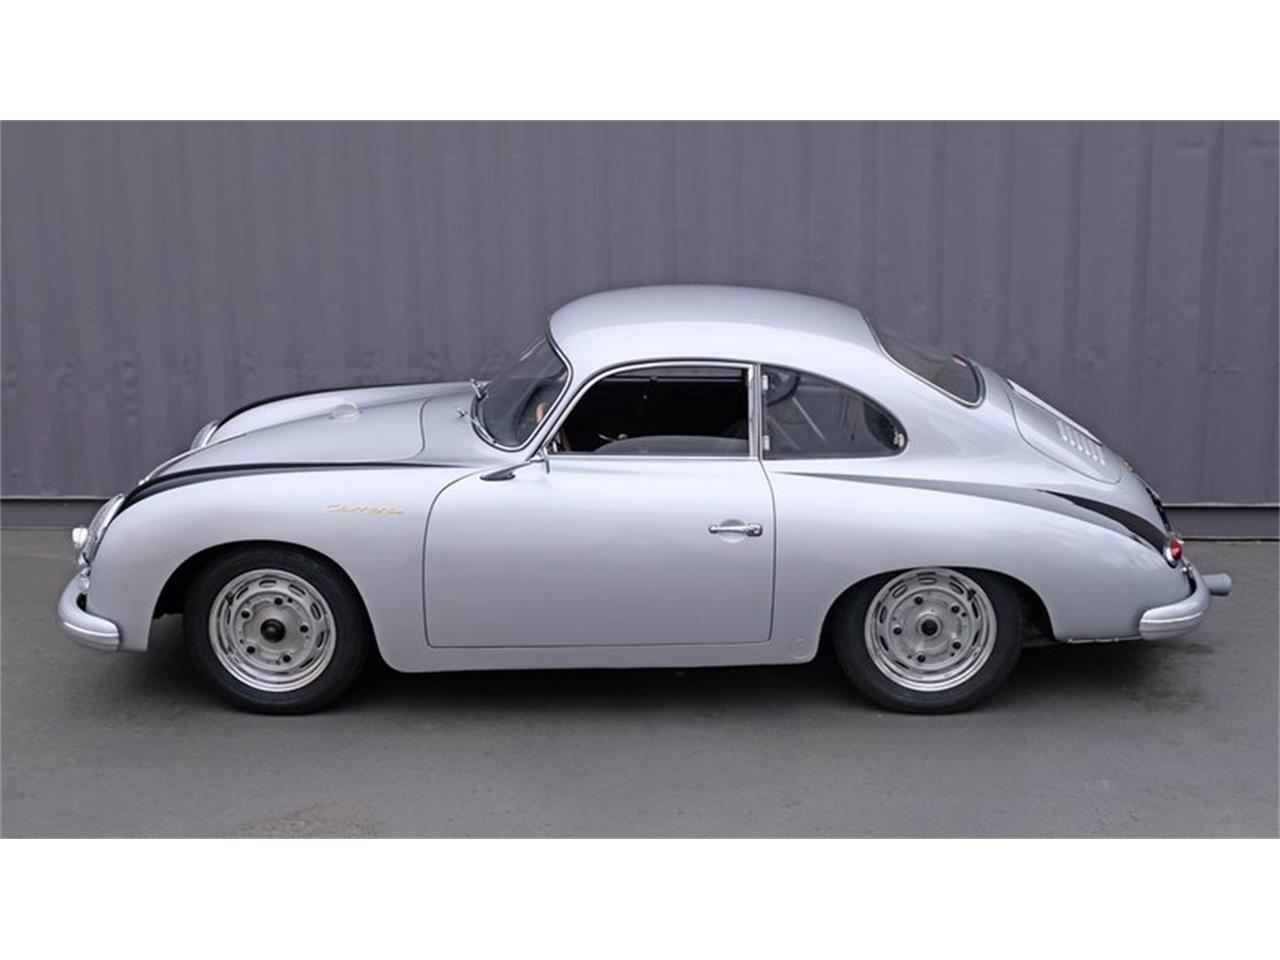 Large Picture of Classic 1957 Porsche 356 located in San Diego California Auction Vehicle - Q2HJ